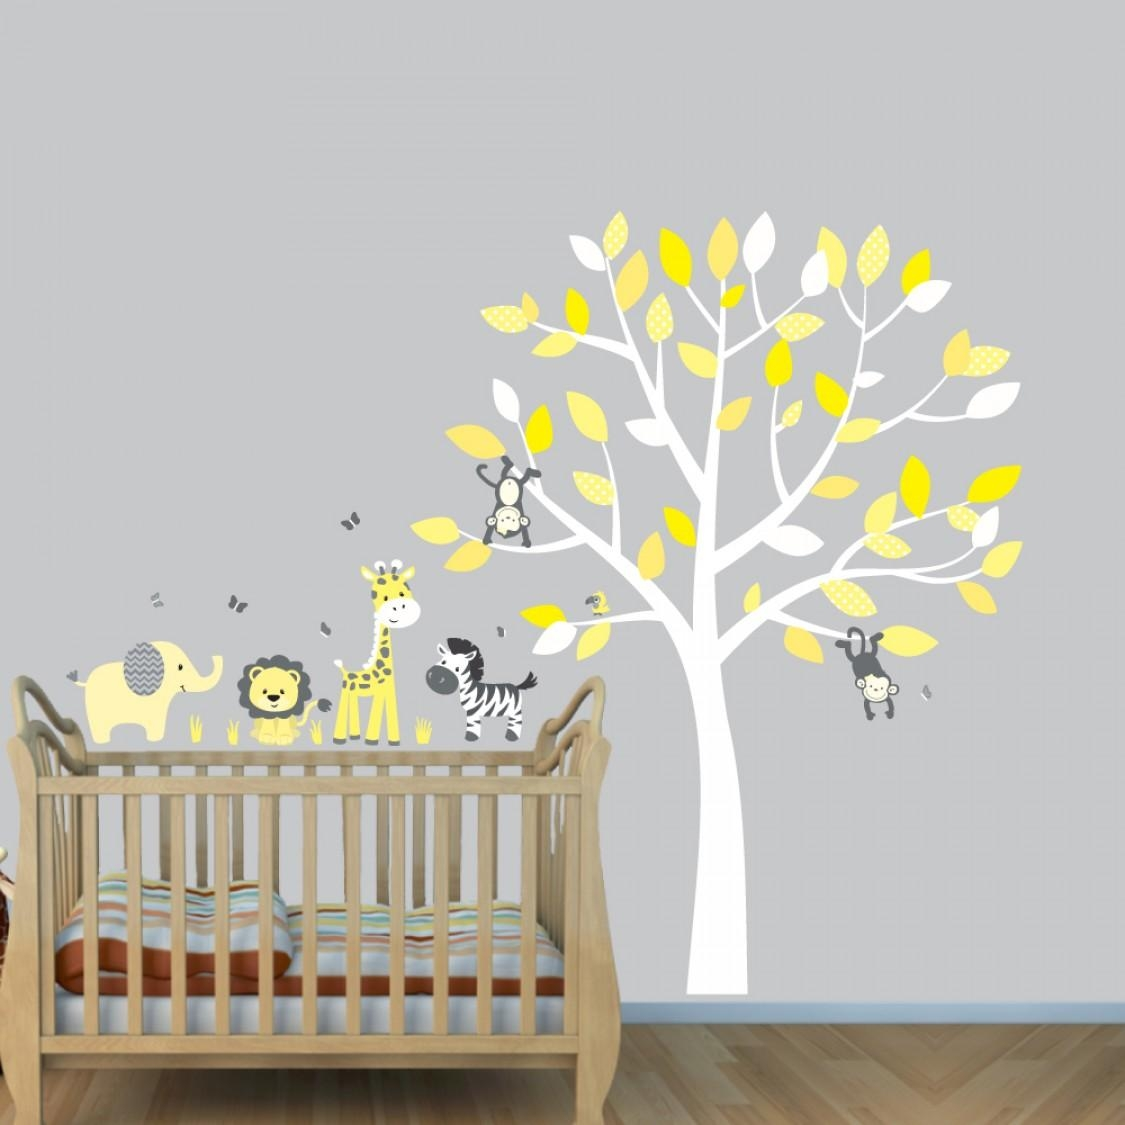 Grey Jungle Wall Stickers With Elephant Decals For Yellow Nursery Throughout Gray And Yellow Wall Art (View 19 of 20)